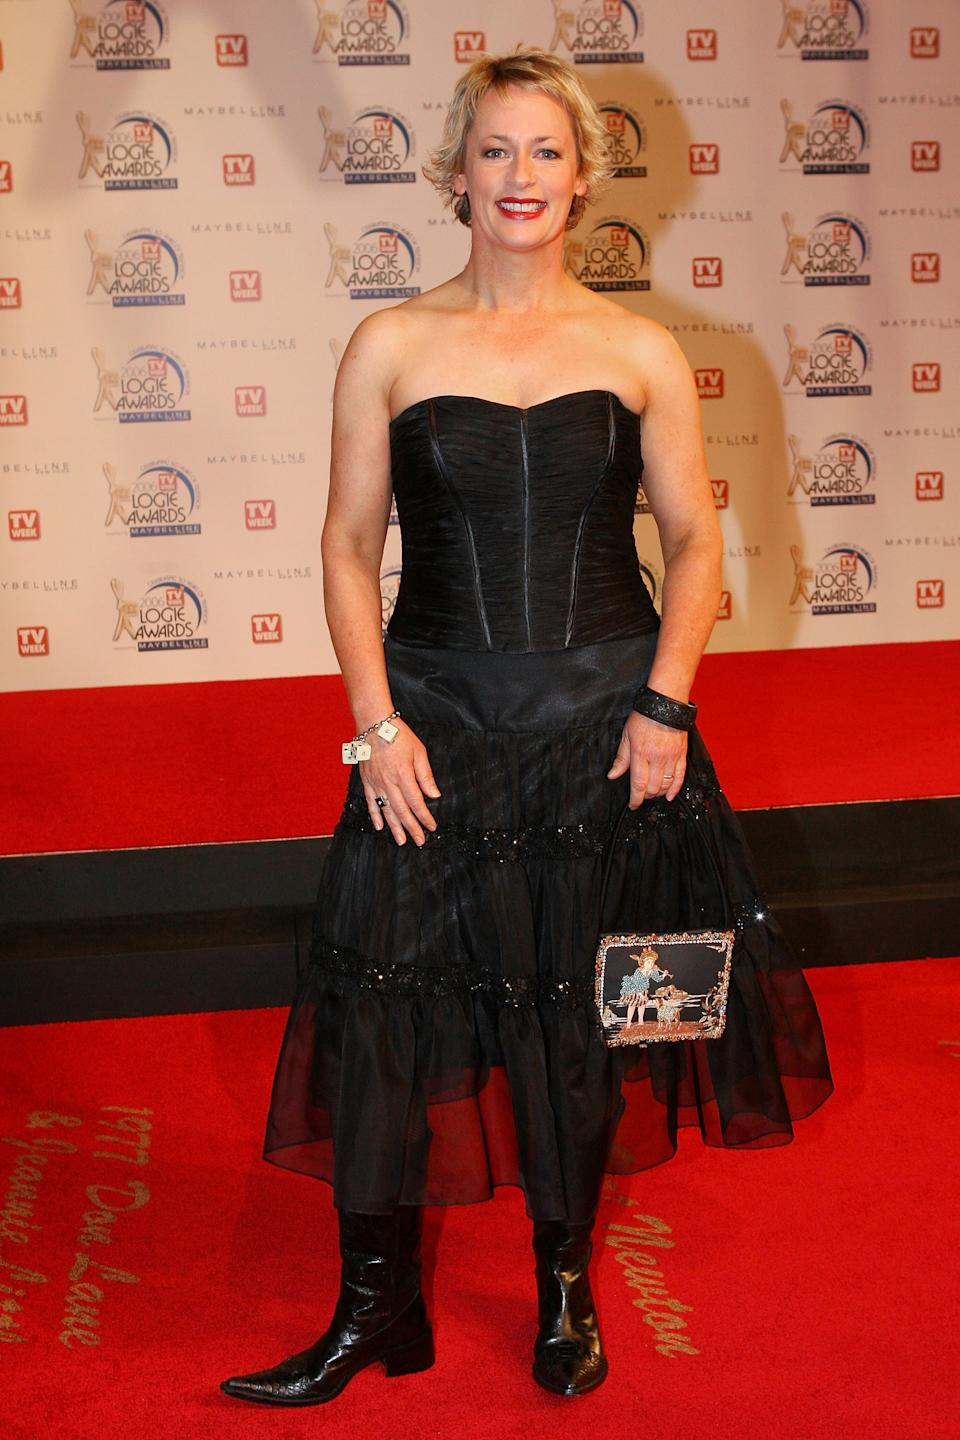 The Living Room host Amanda Keller may walk away a winner at this year's awards - she's up for a Gold Logie - but back in 2006 she was a big fashion fail. The corset, tulle shirt and flat-heeled, knee-high boots all say 'last-minute Halloween costume' not awards show red carpet. Photo: Getty Images.